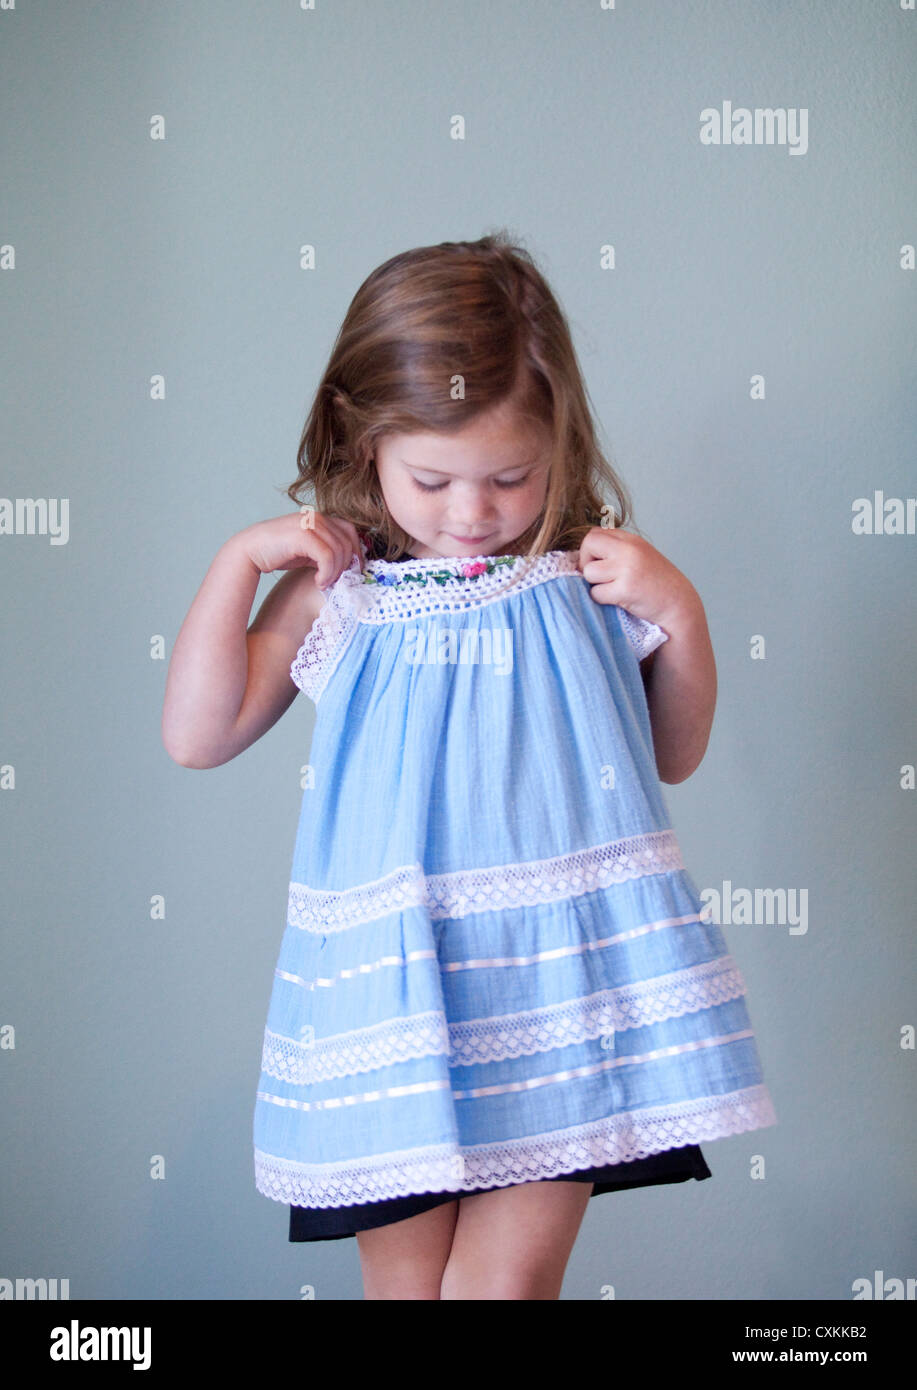 Young girl holding blue dress - Stock Image